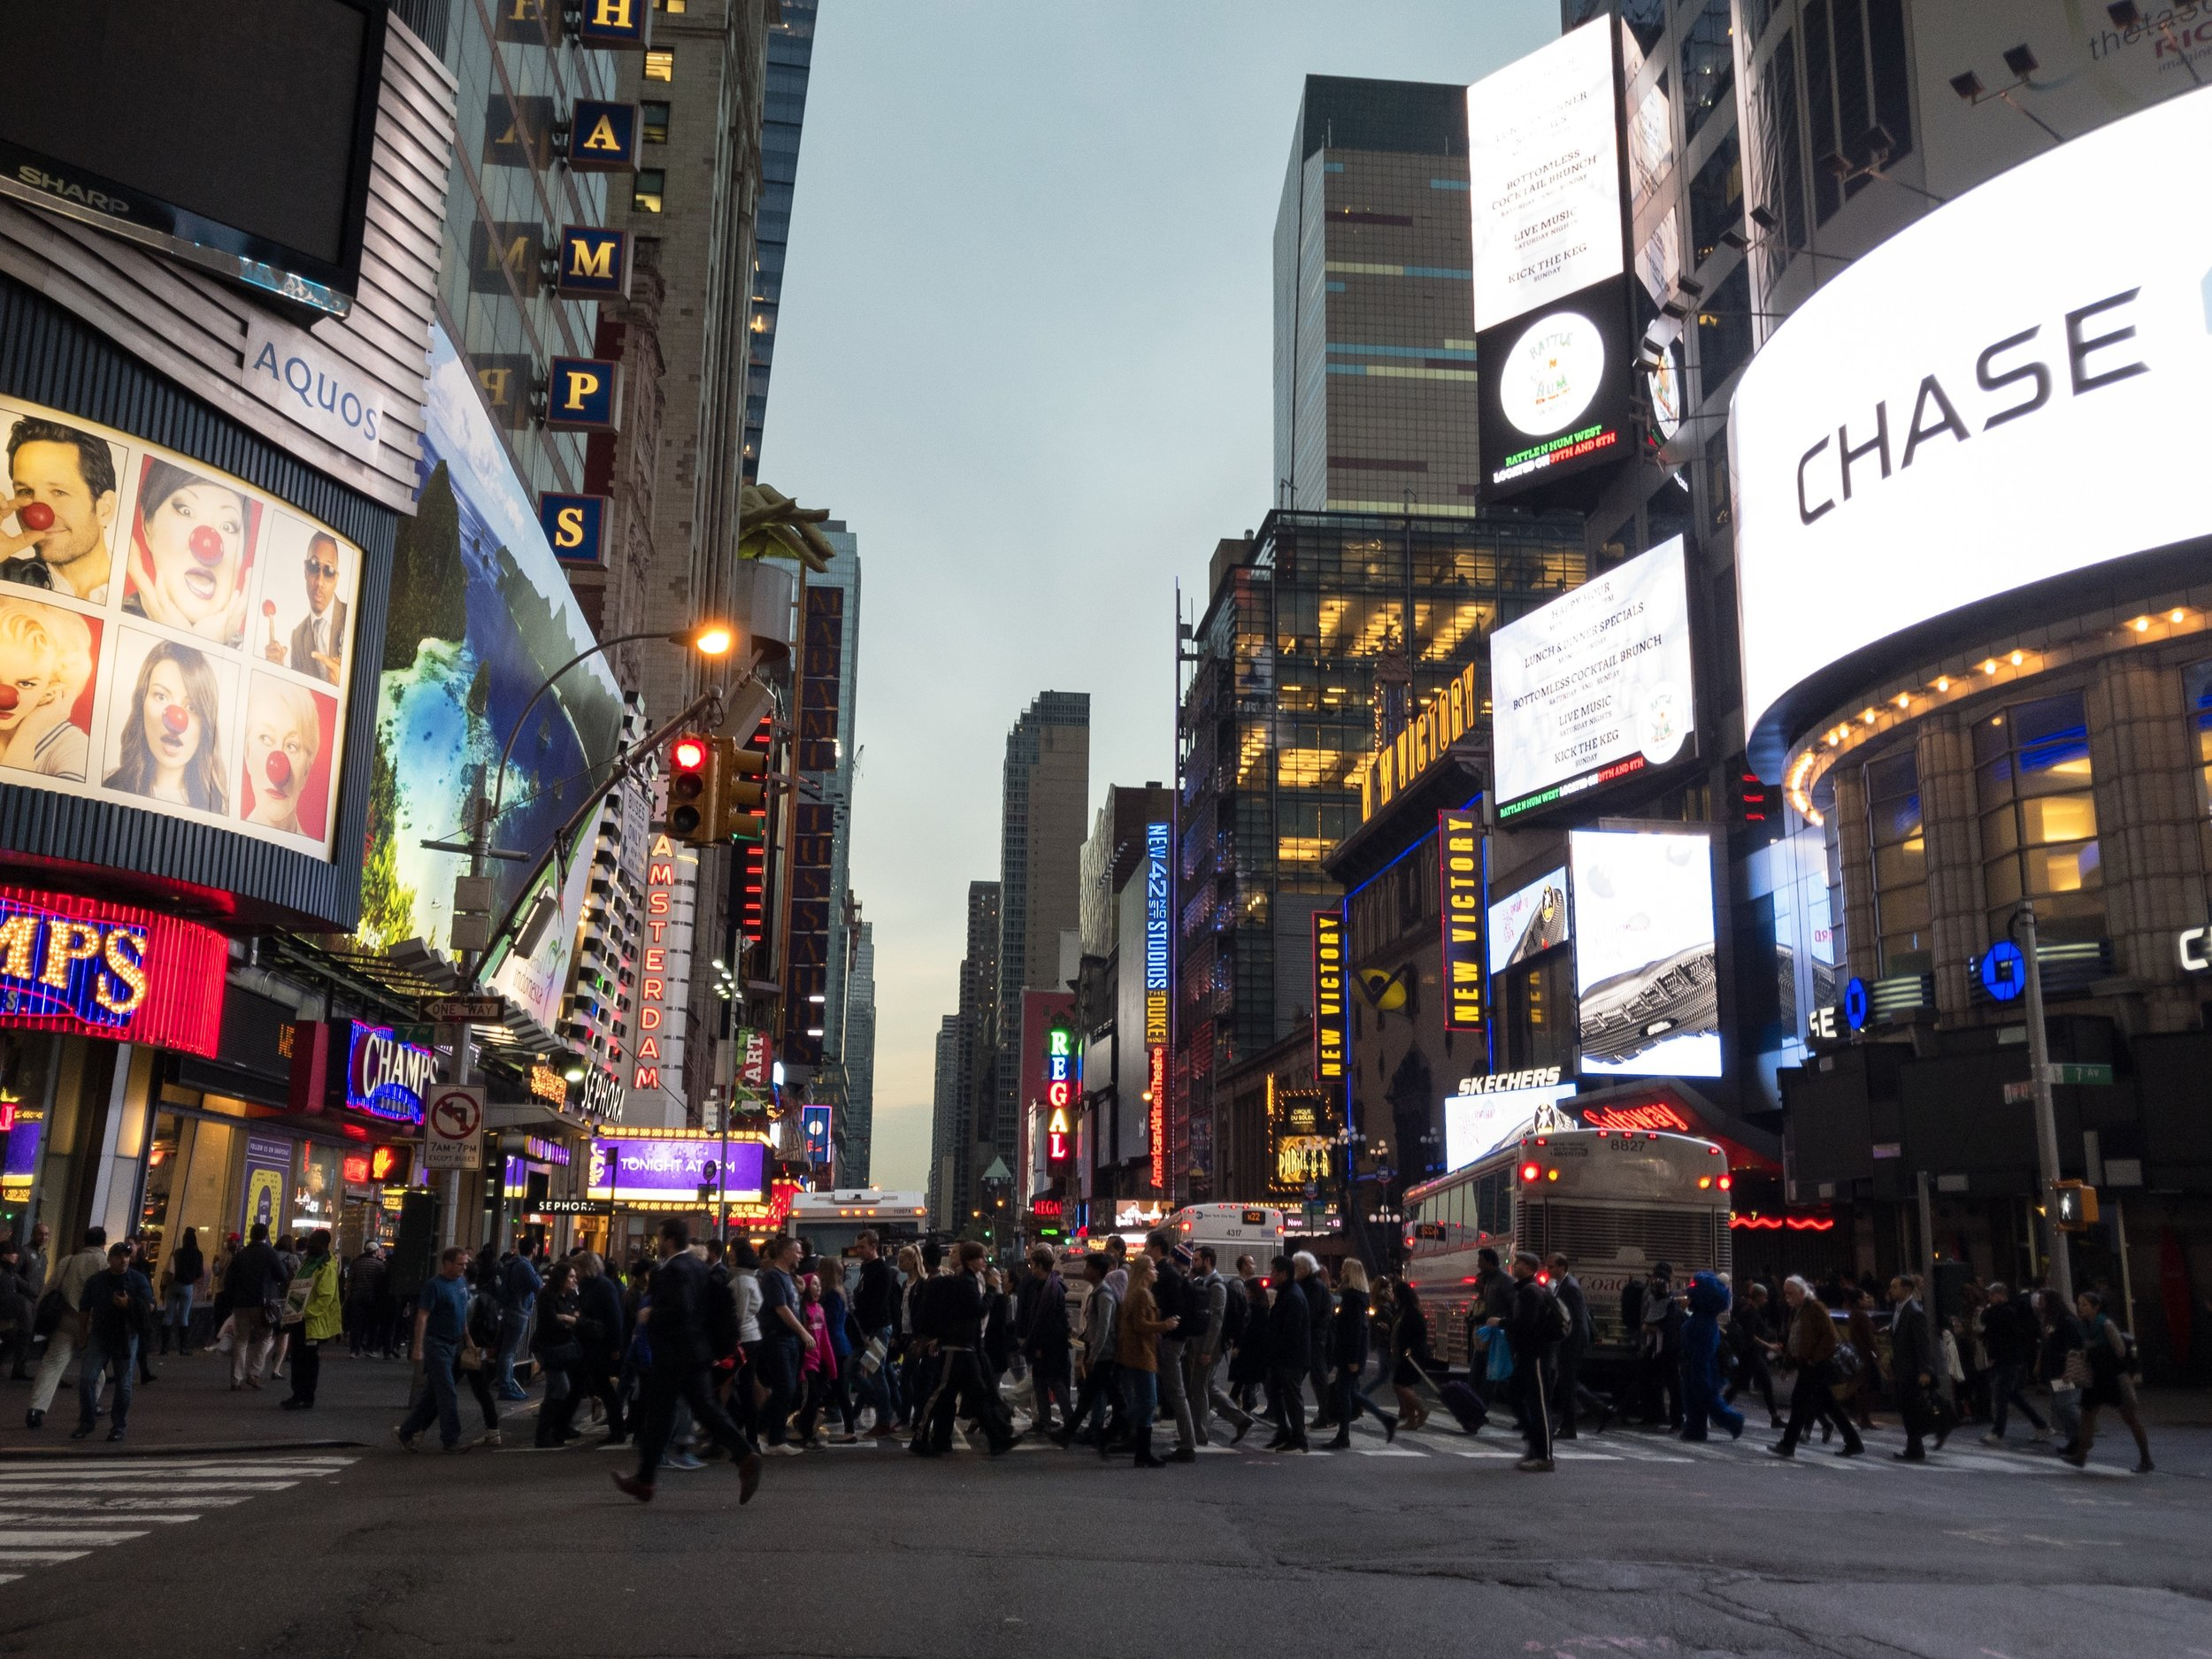 On 42nd Street (West)